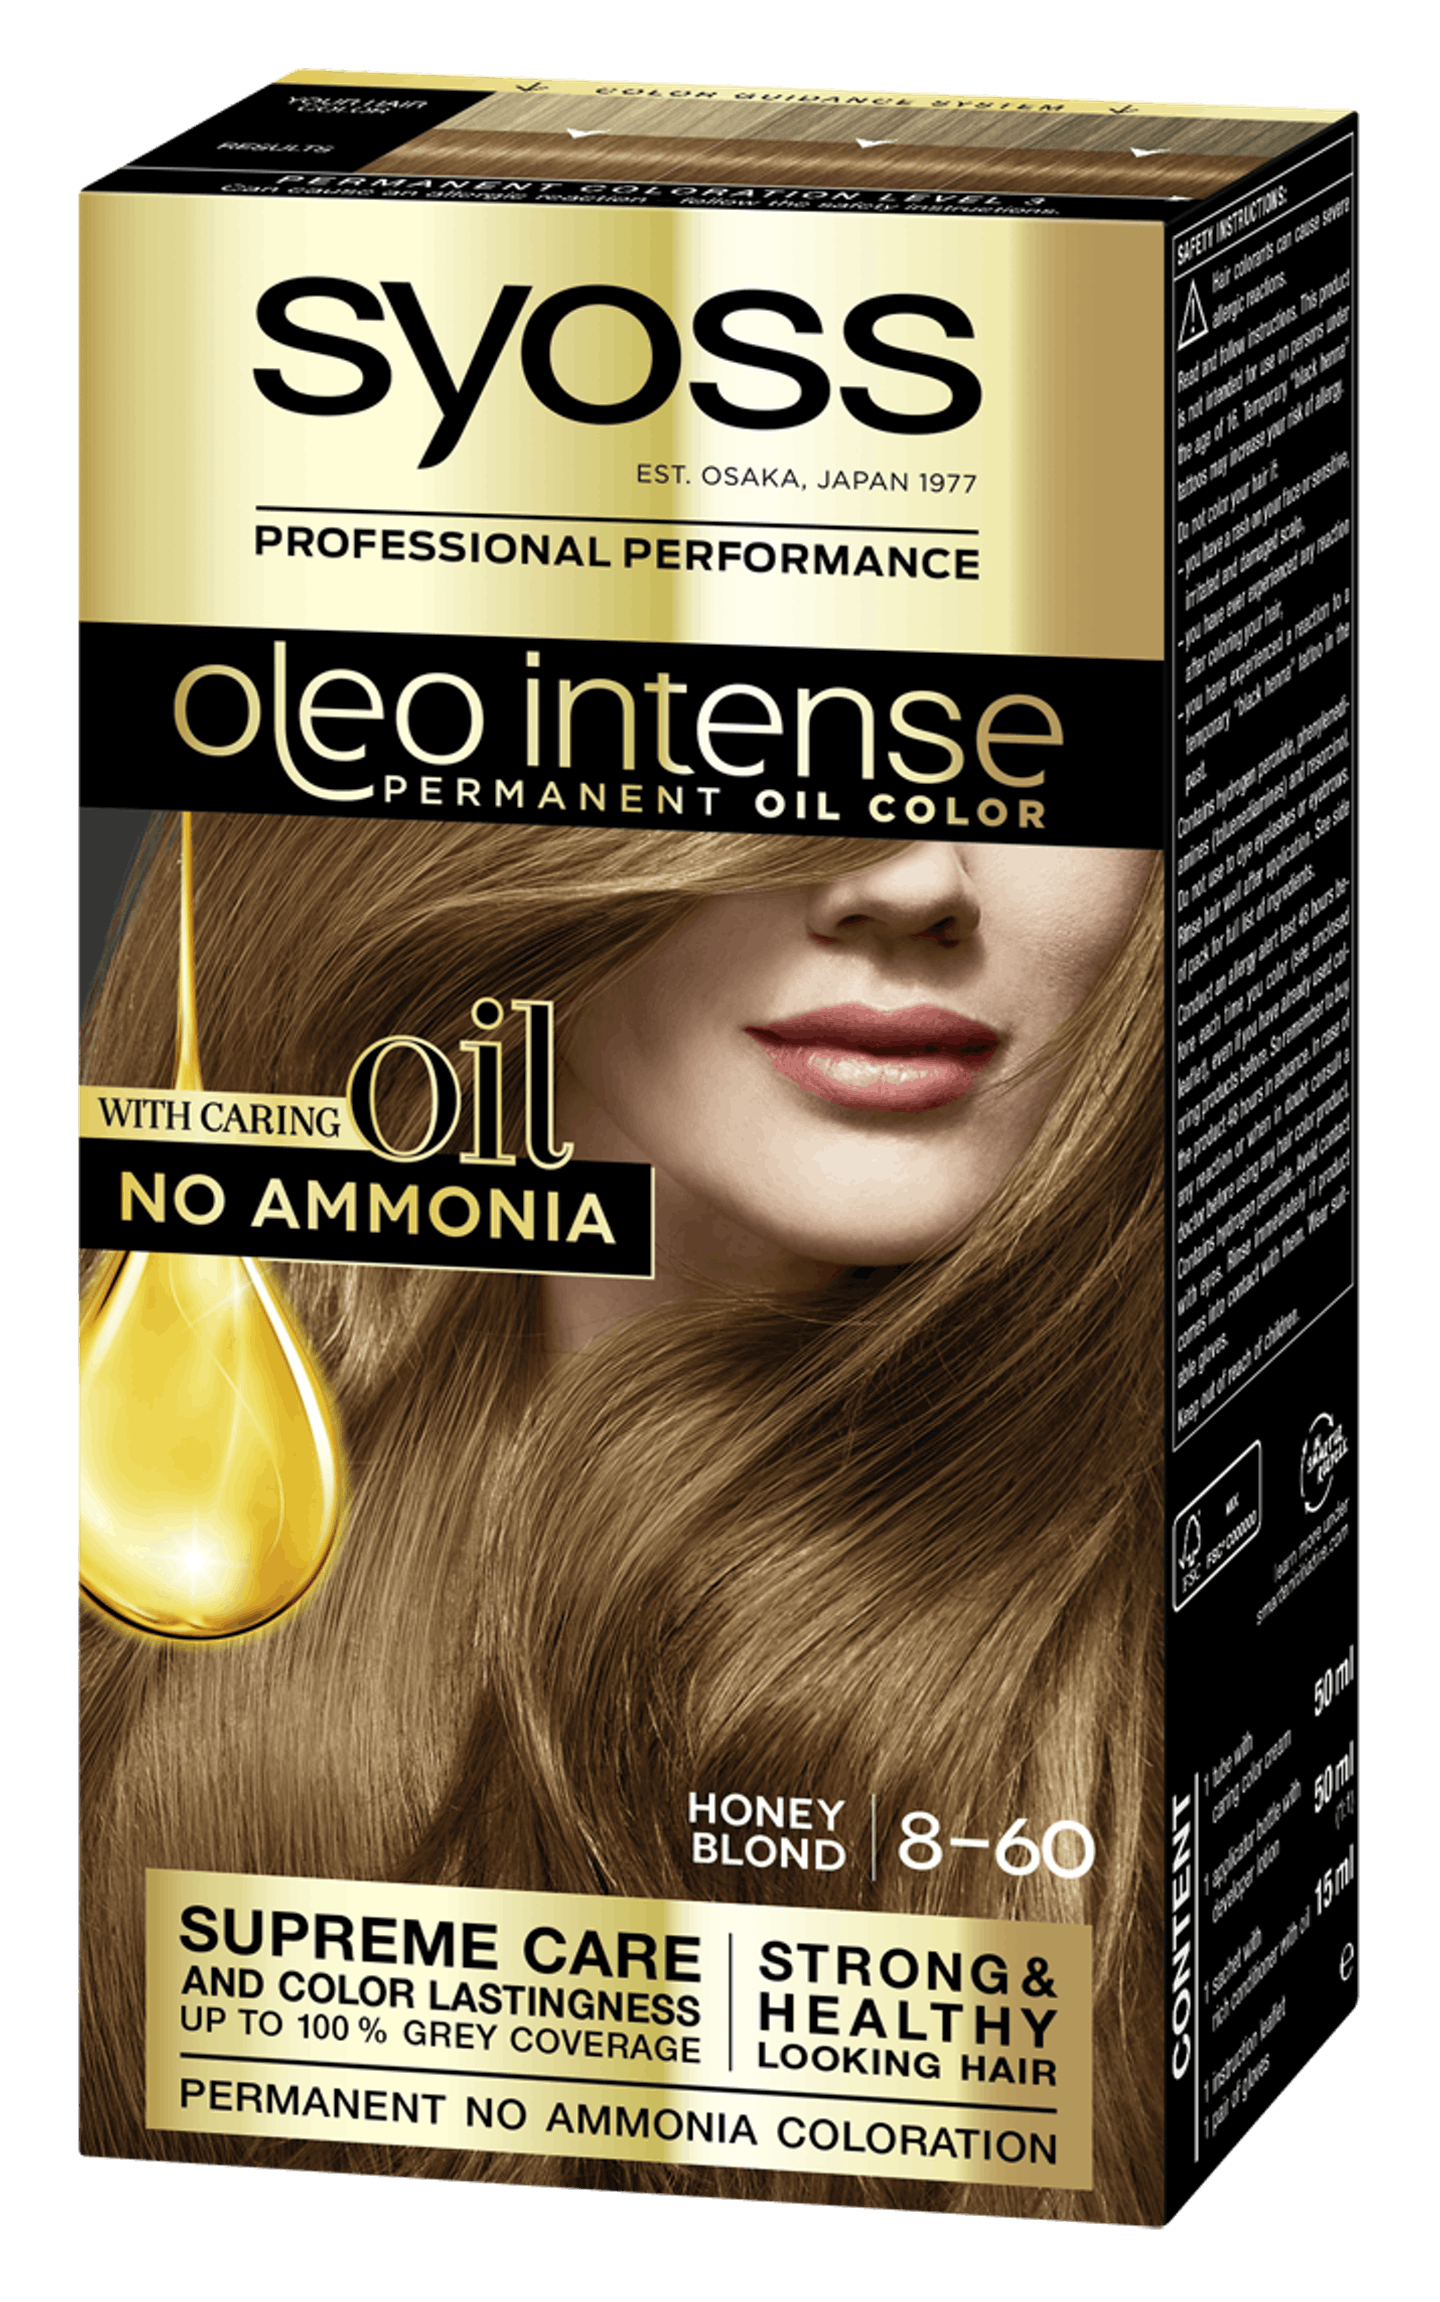 Syoss Oleo Intense Permanent Oil Color 8-60 Honey Blond